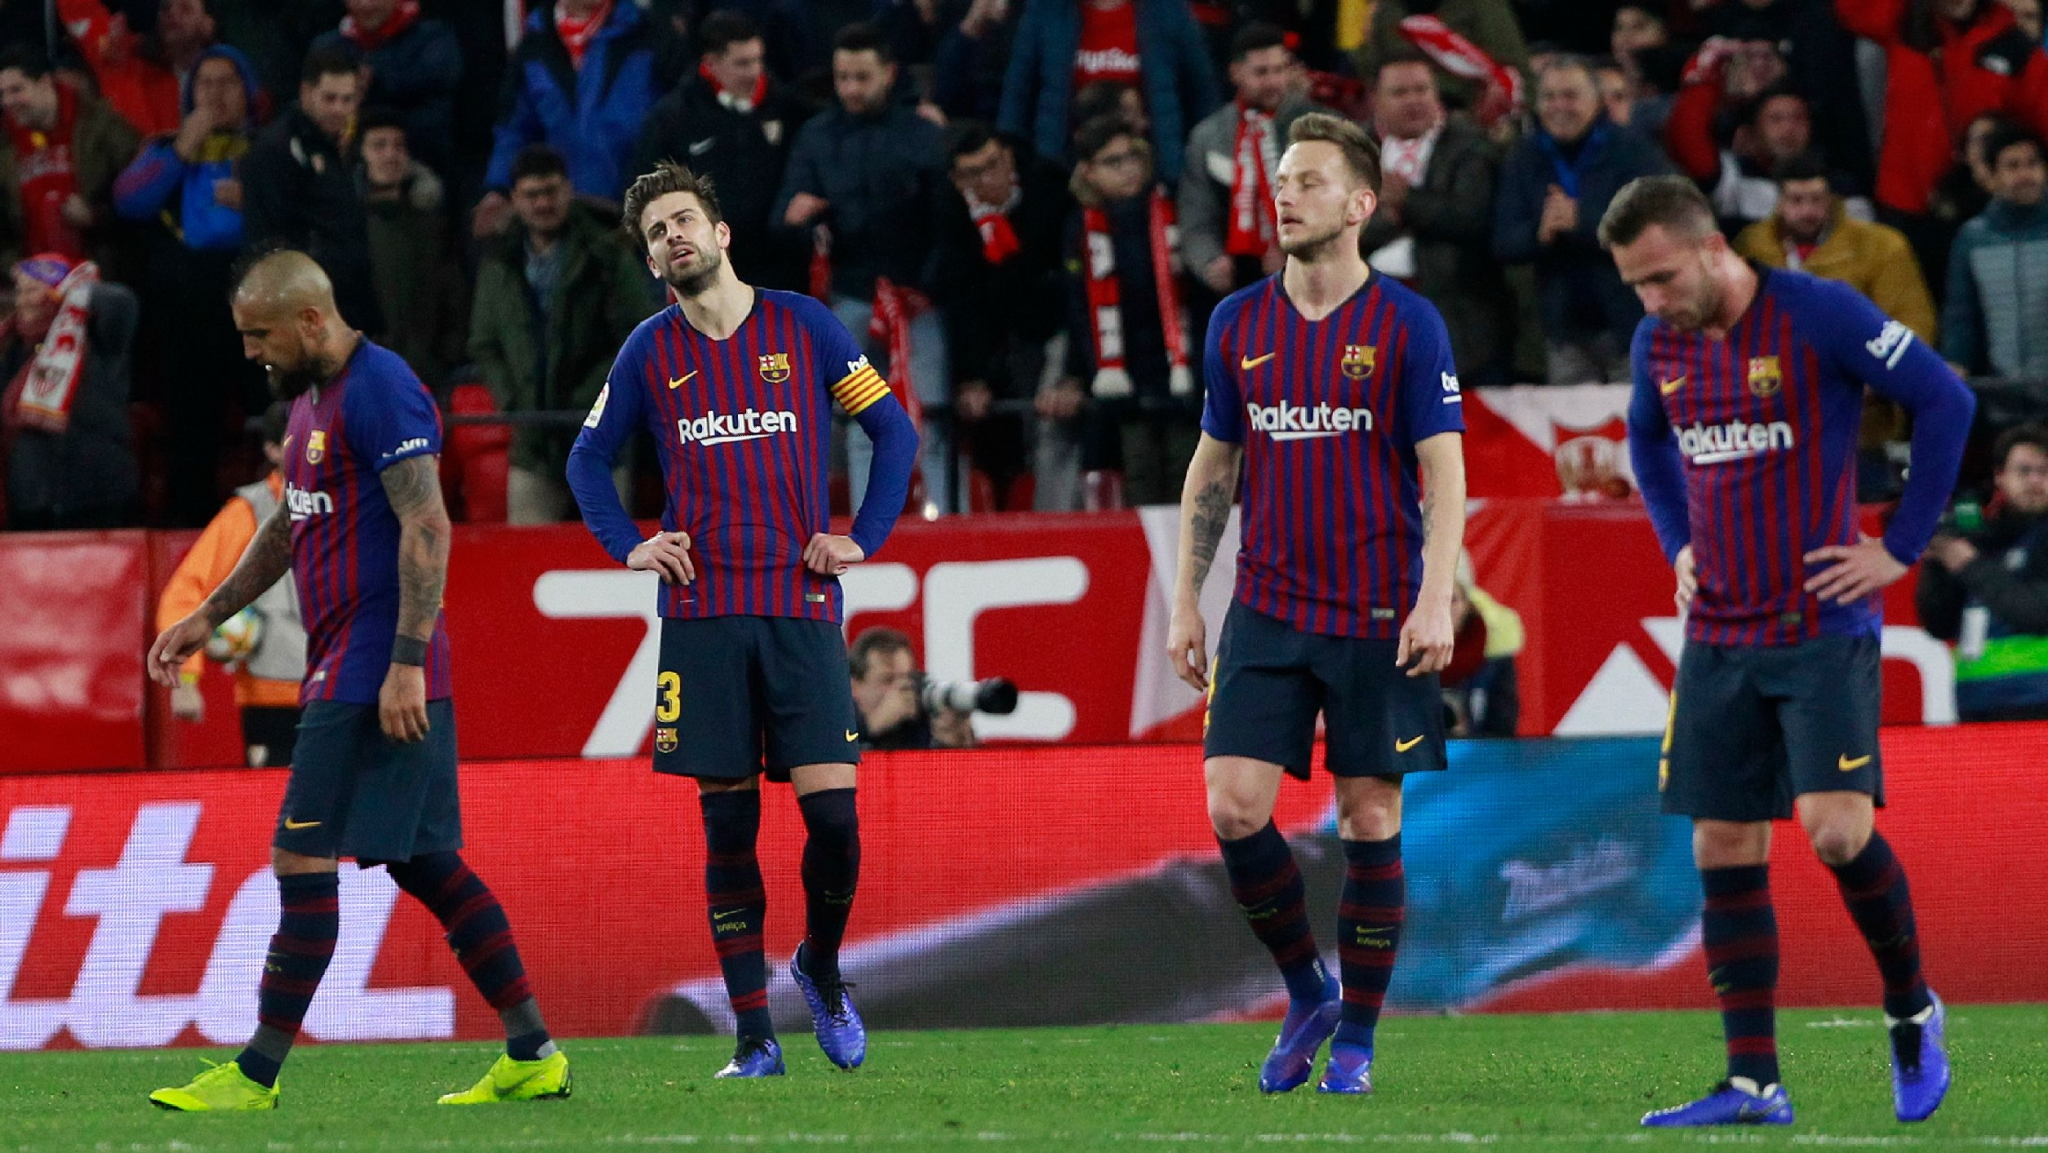 Messi-Less Barca Beaten 2-0 by Sevilla in Copa del Rey Q/F 1st Leg